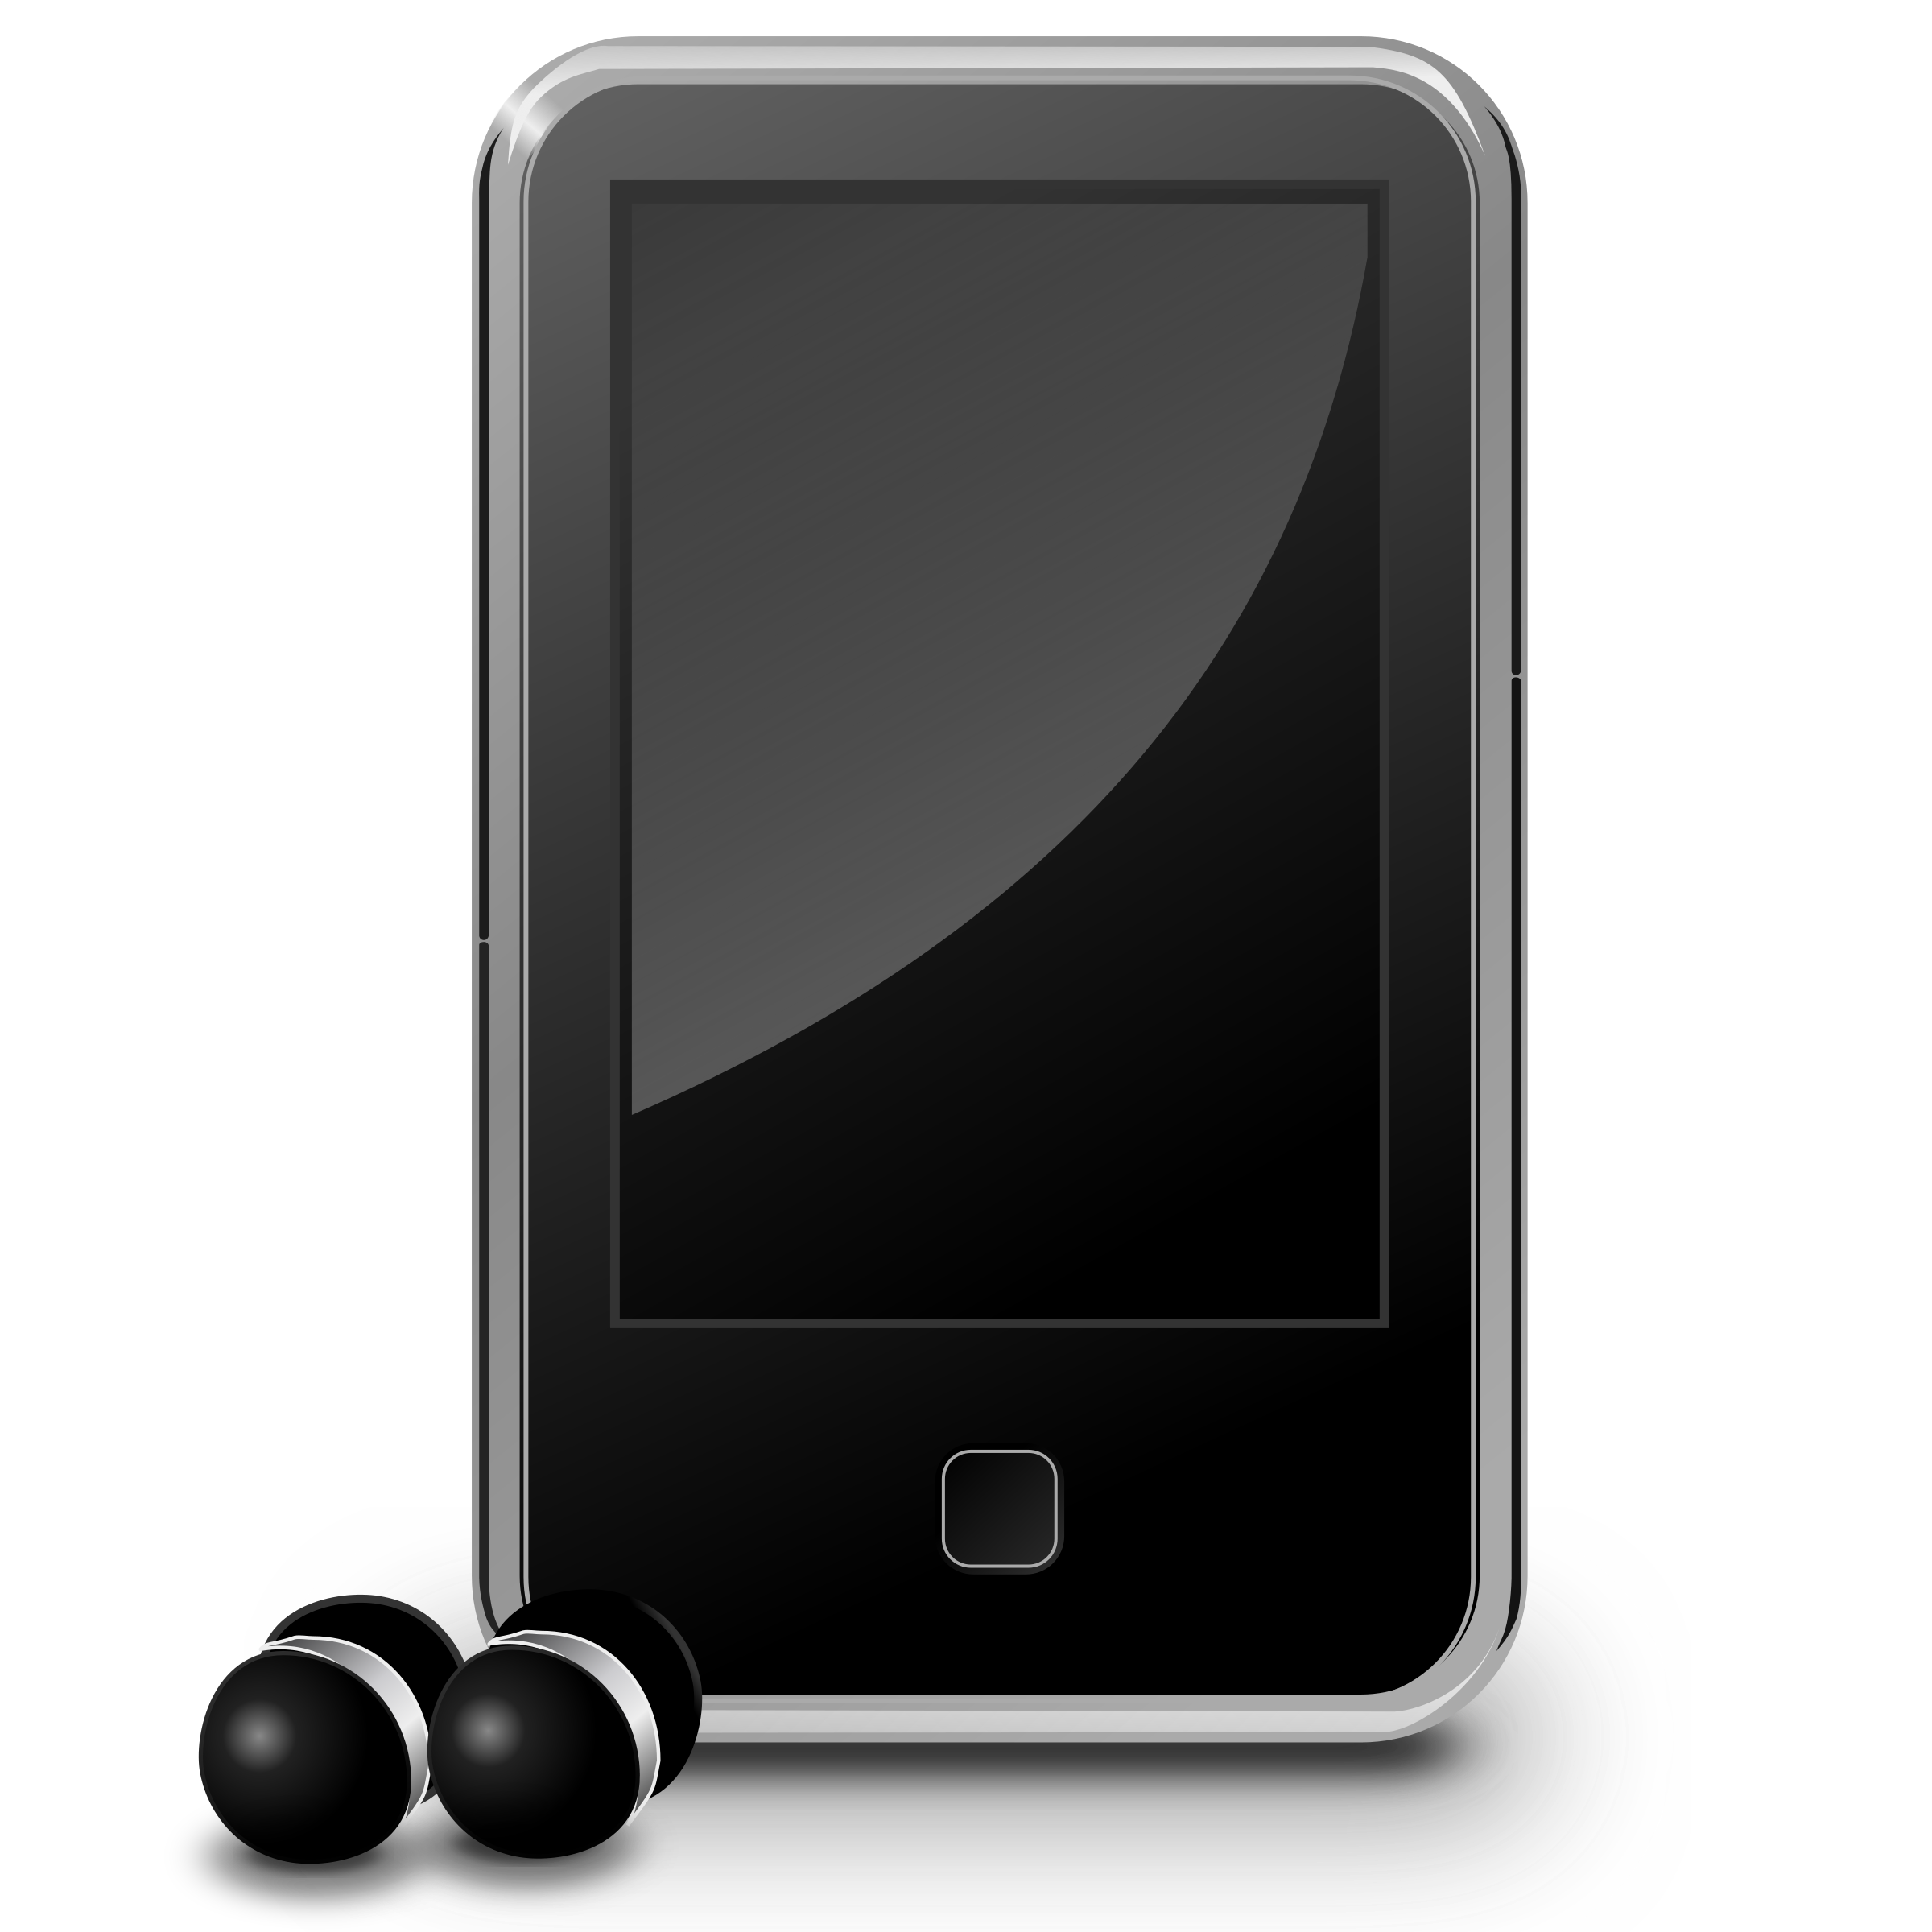 mp3 audio player by Jiro